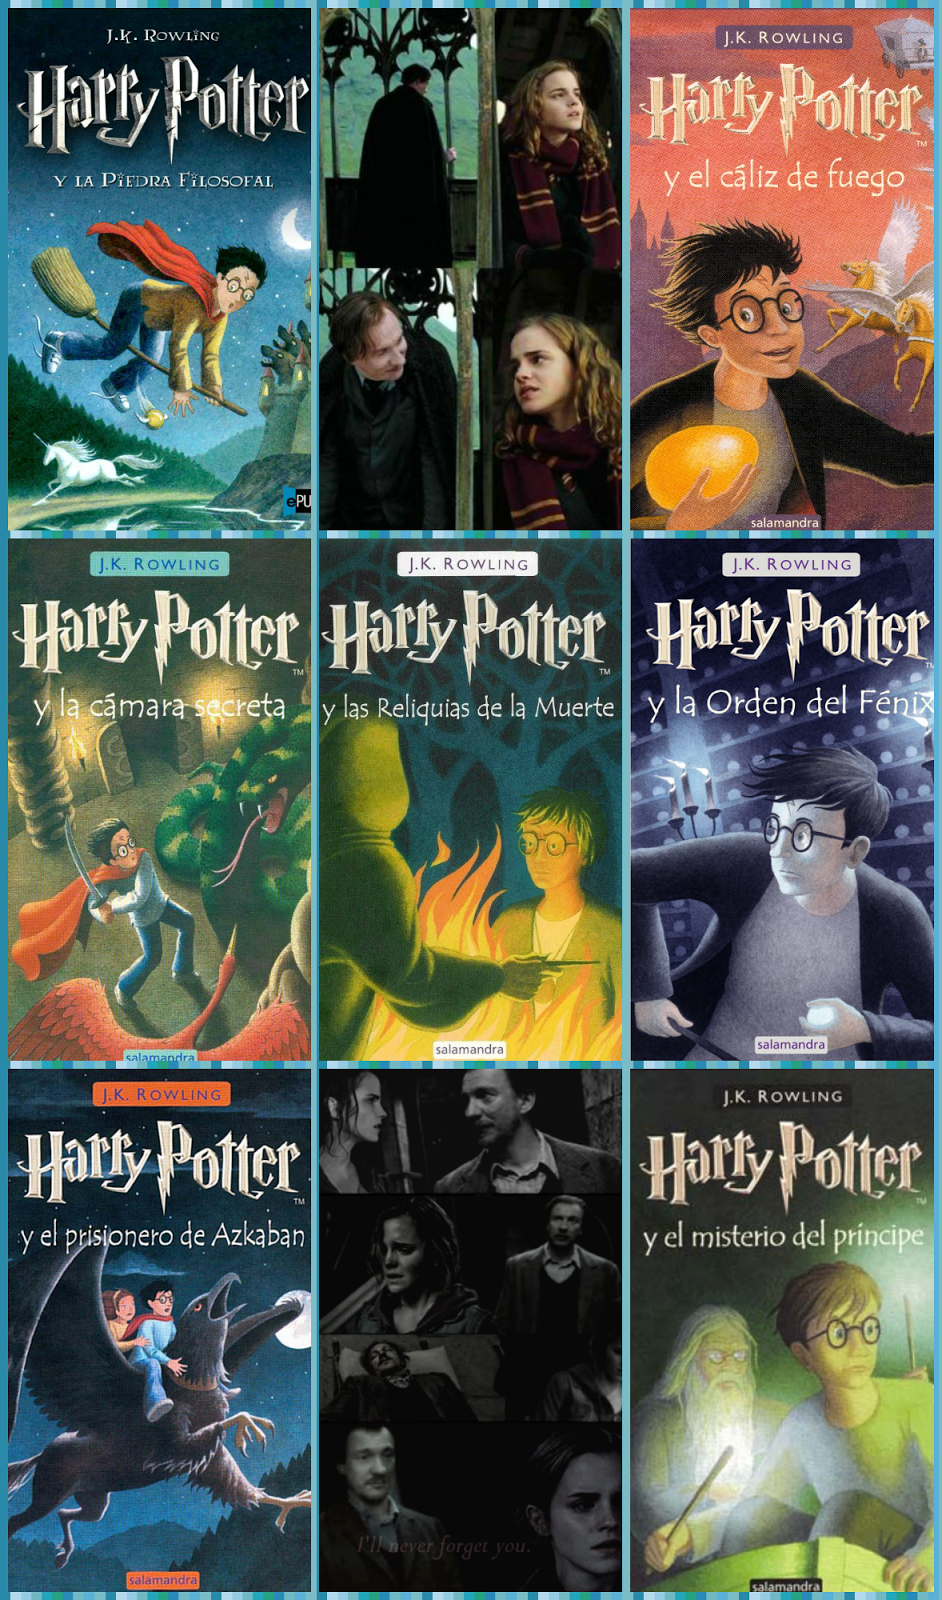 Descargar Libros De Harry Potter Libros 8 Y 9 De Harry Potter - Wroc?awski Informator